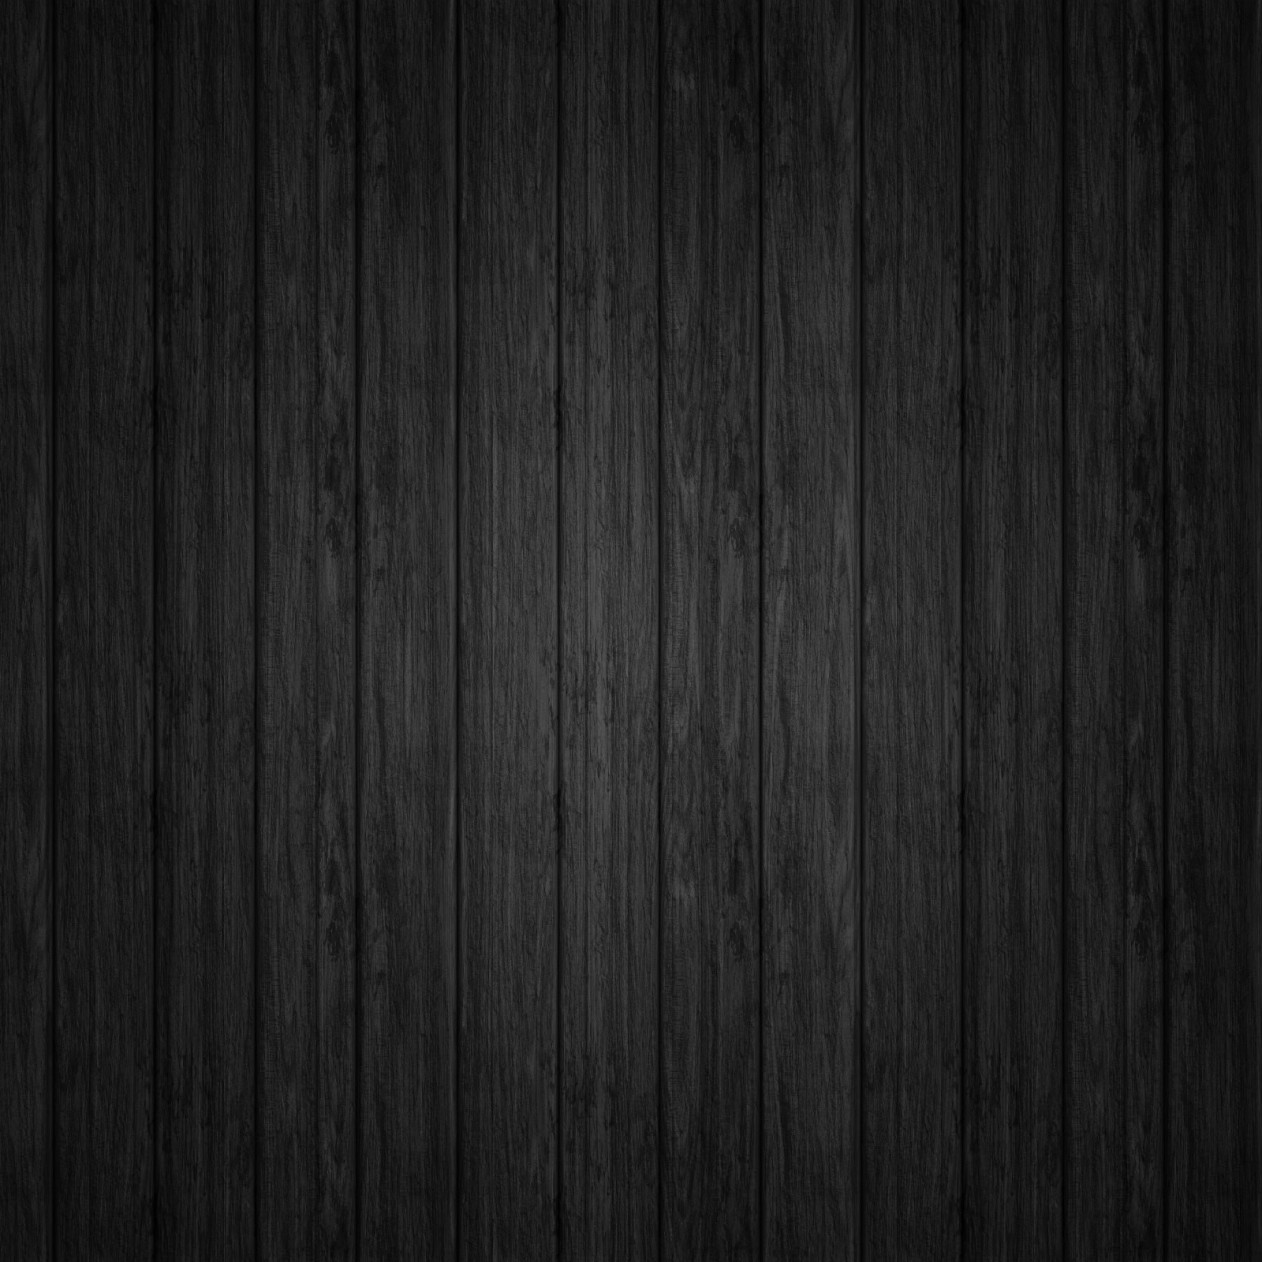 Dark Wood Texture Wallpaper for Apple iPad mini